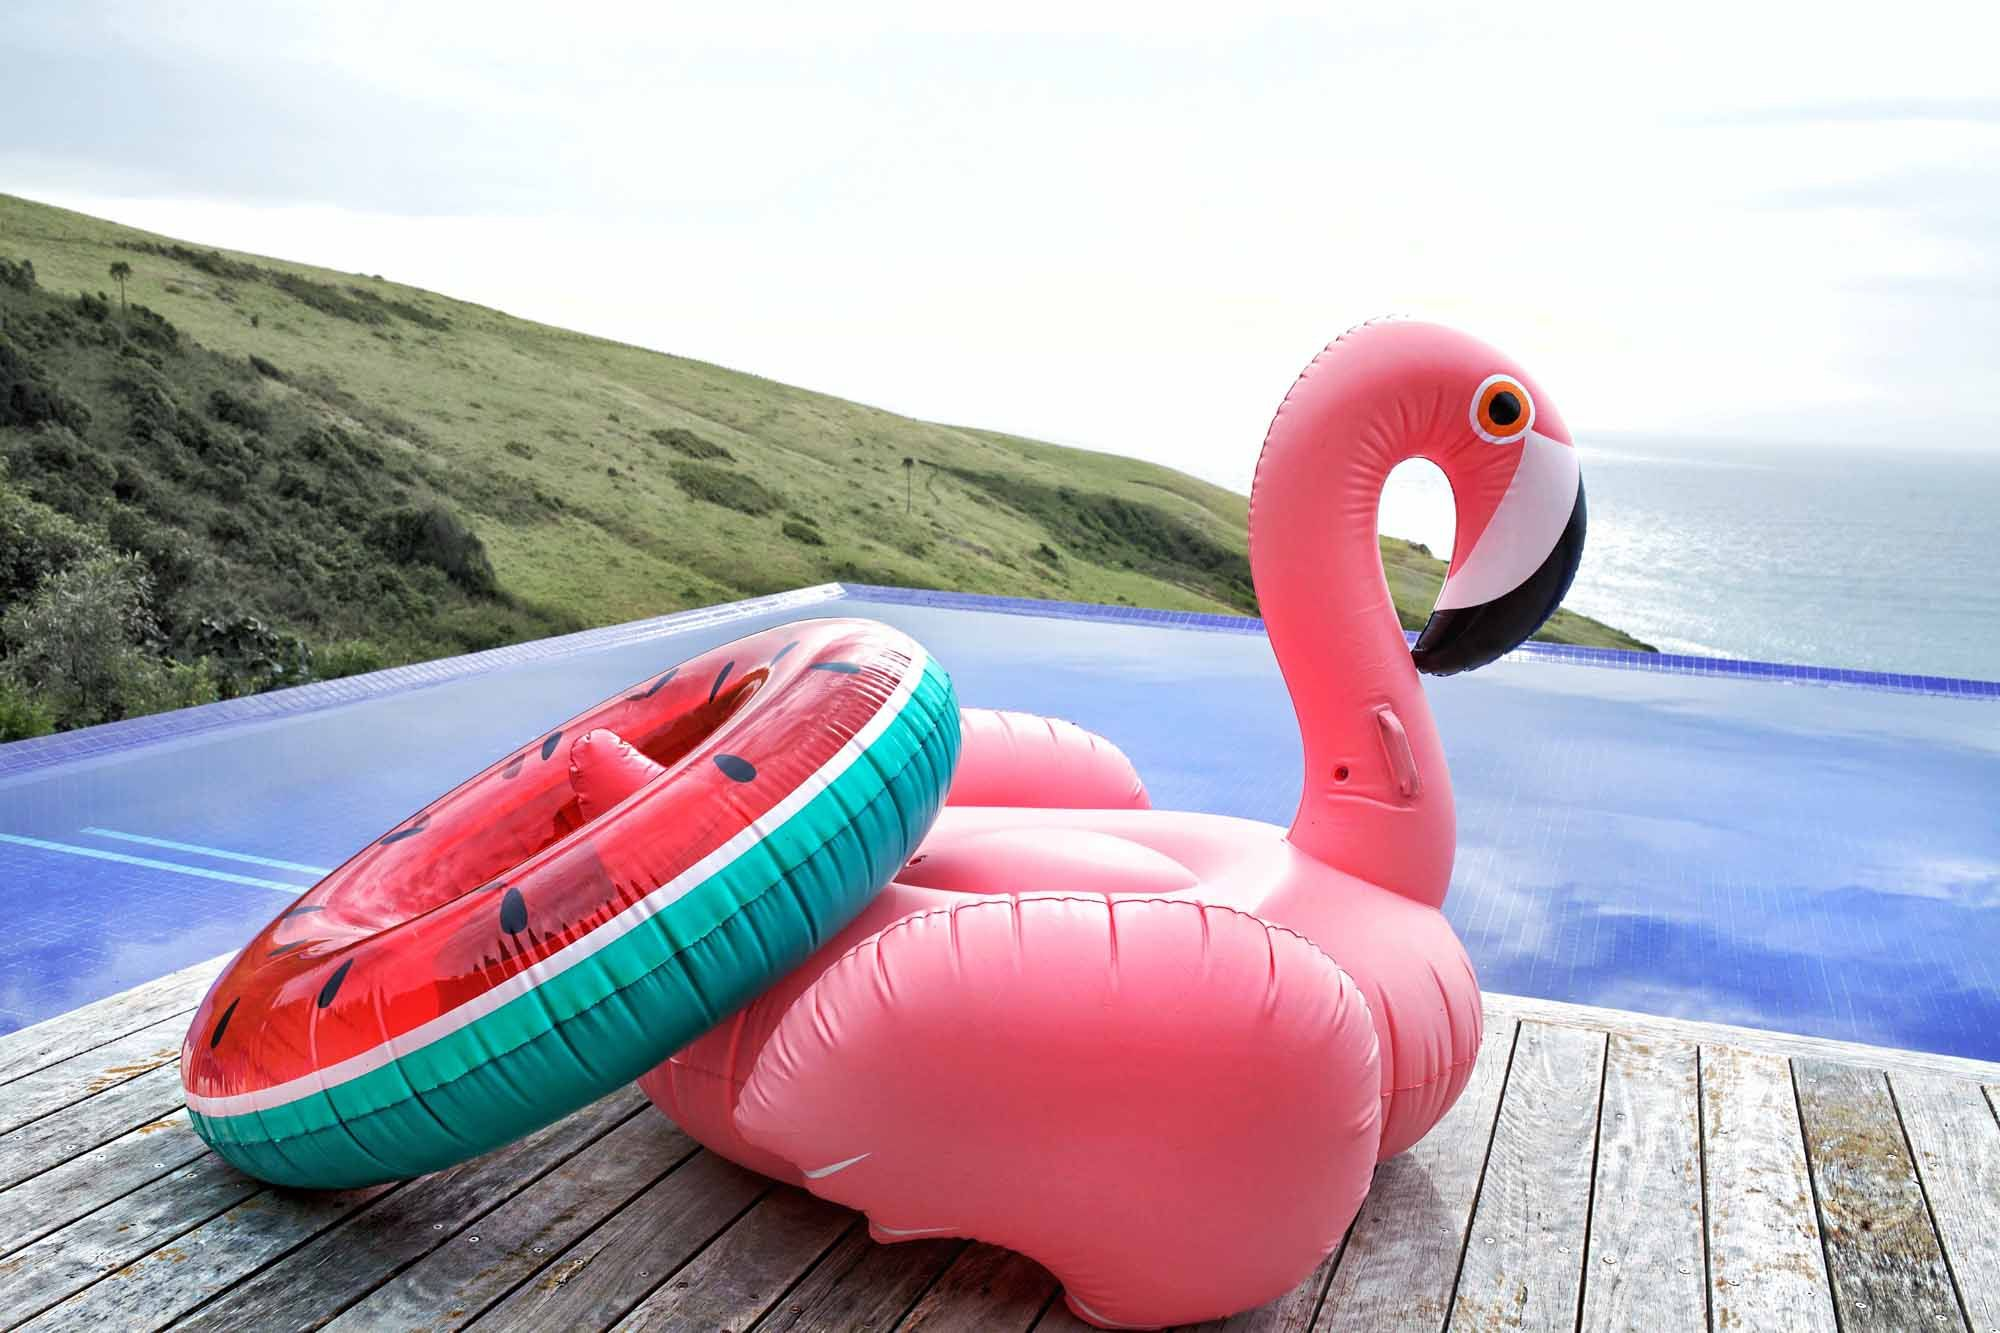 Ocean Farm Sunny Life Pool Floats